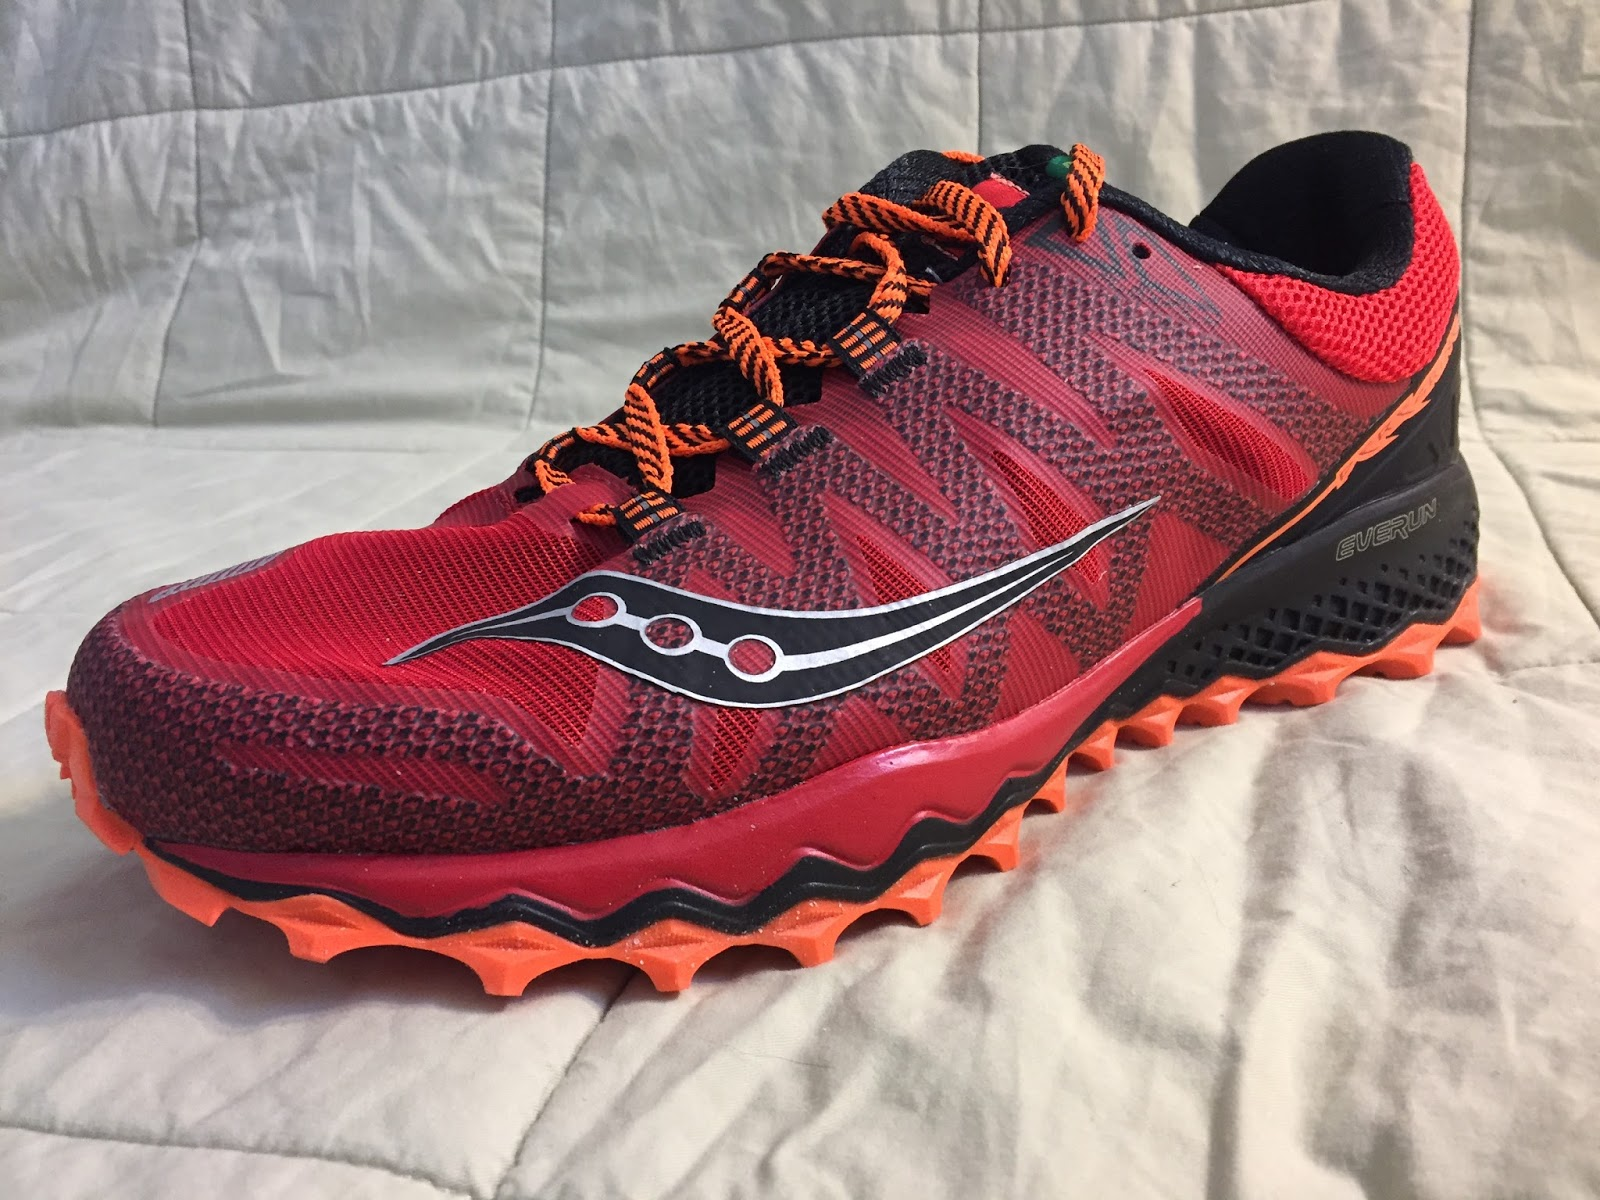 b217226bd5c0 Road Trail Run  Saucony Peregrine 7 Review - All the Greatness of ...